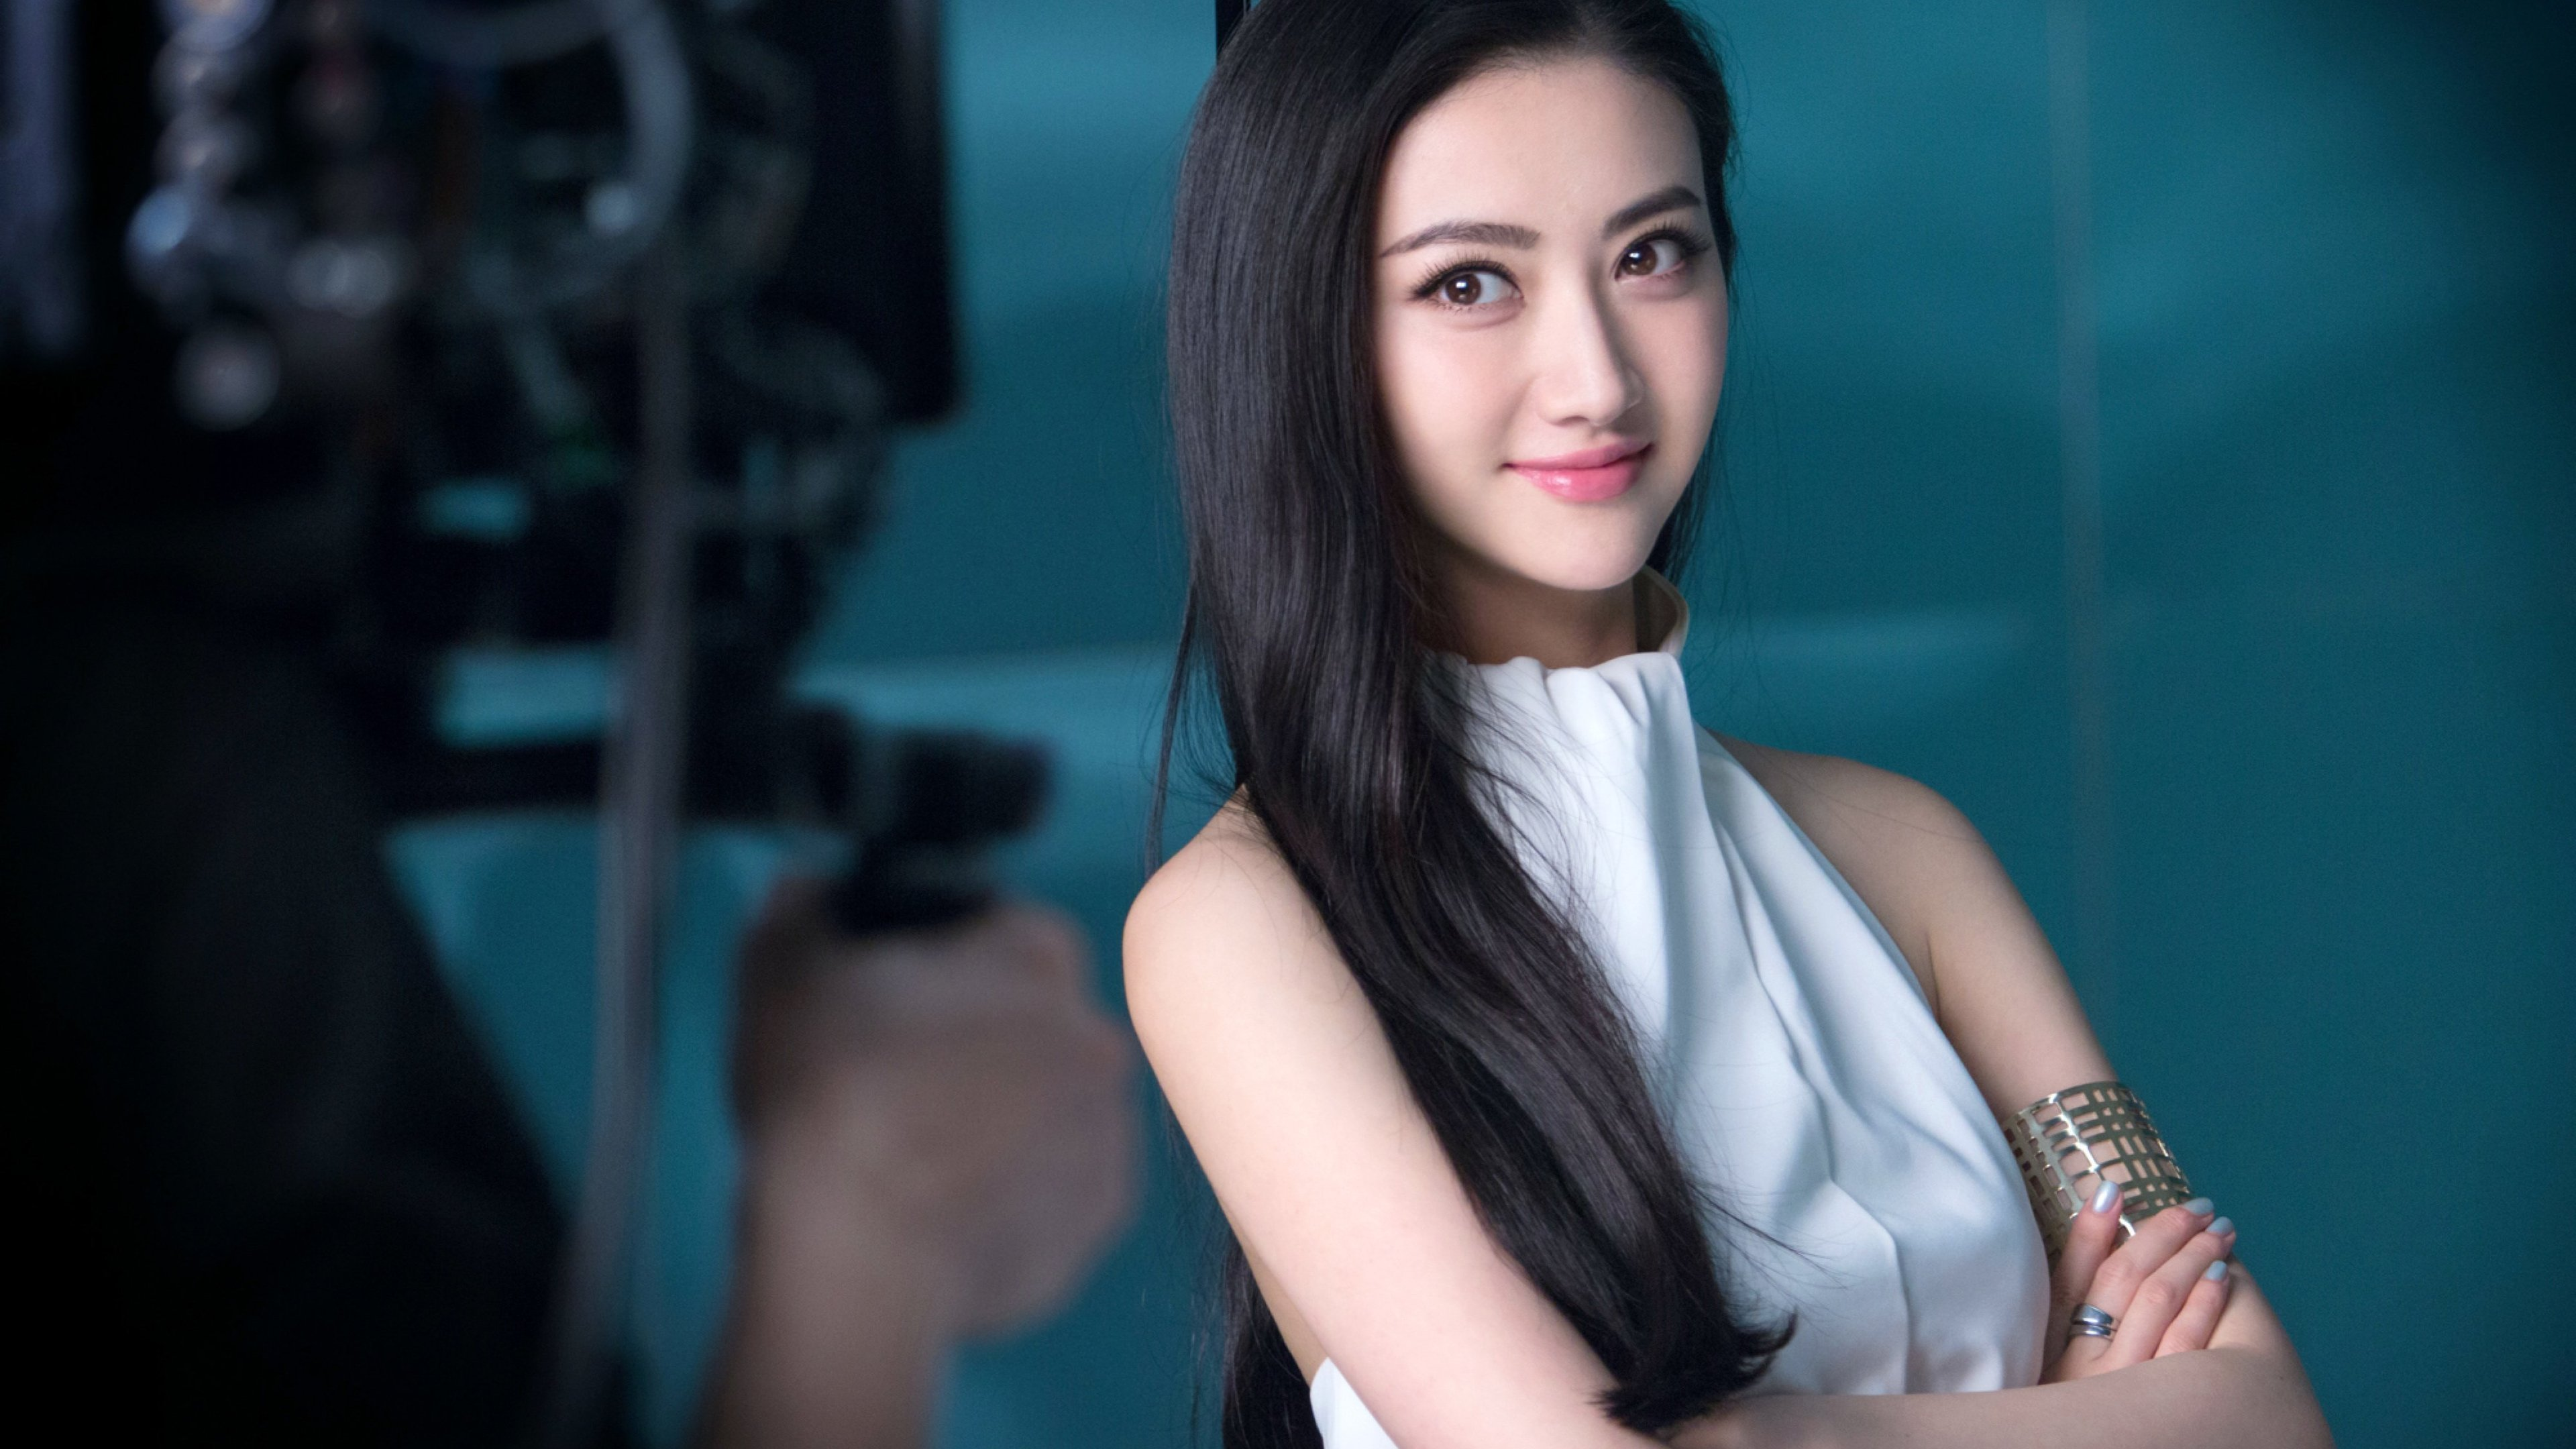 jing tian 1536859539 - Jing Tian - jing tian wallpapers, hd-wallpapers, girls wallpapers, celebrities wallpapers, actress wallpapers, 4k-wallpapers